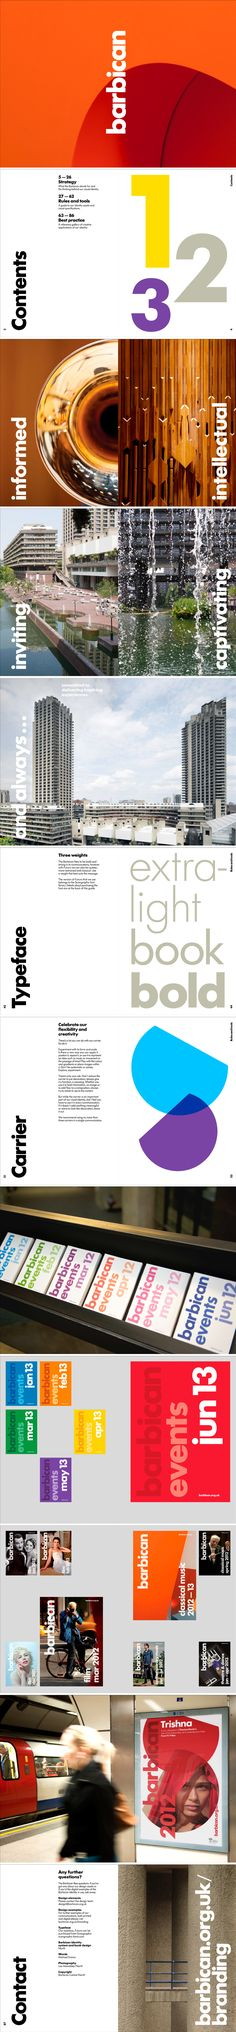 Barbican identity system Guidelines Design by North Copy by Michael Evamy Photography by Lee Mawdsley